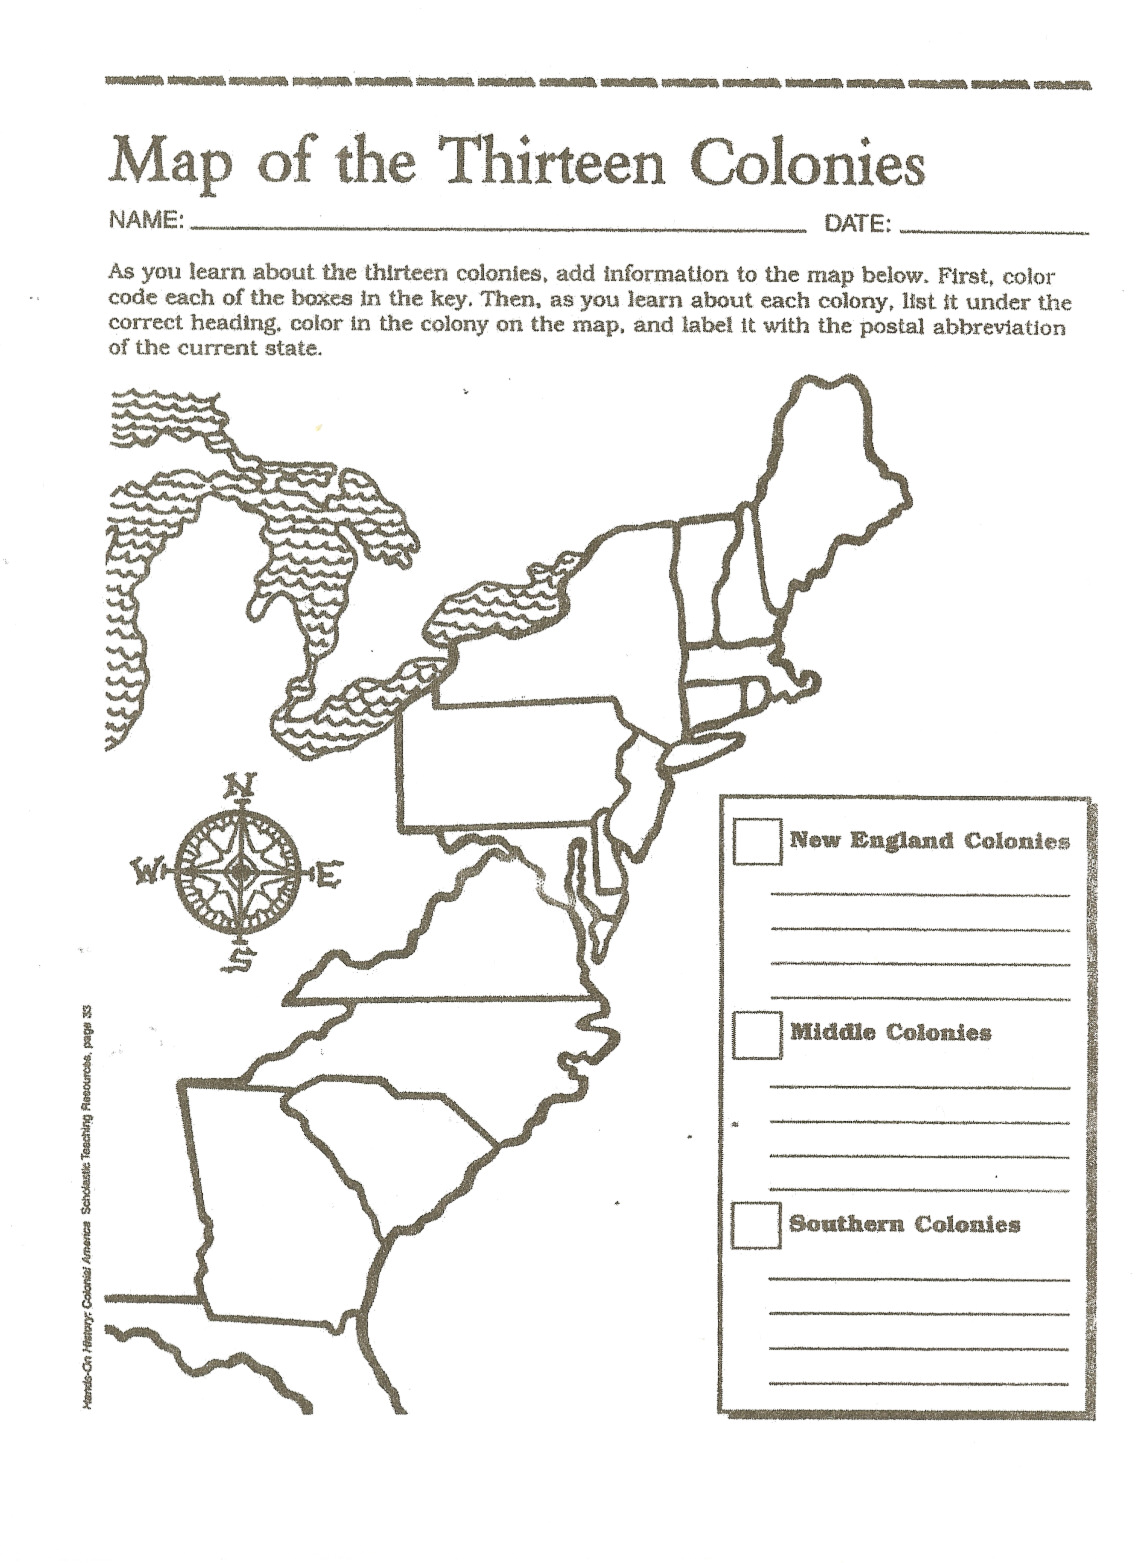 13 Colonies Map Worksheet - Pichaglobal